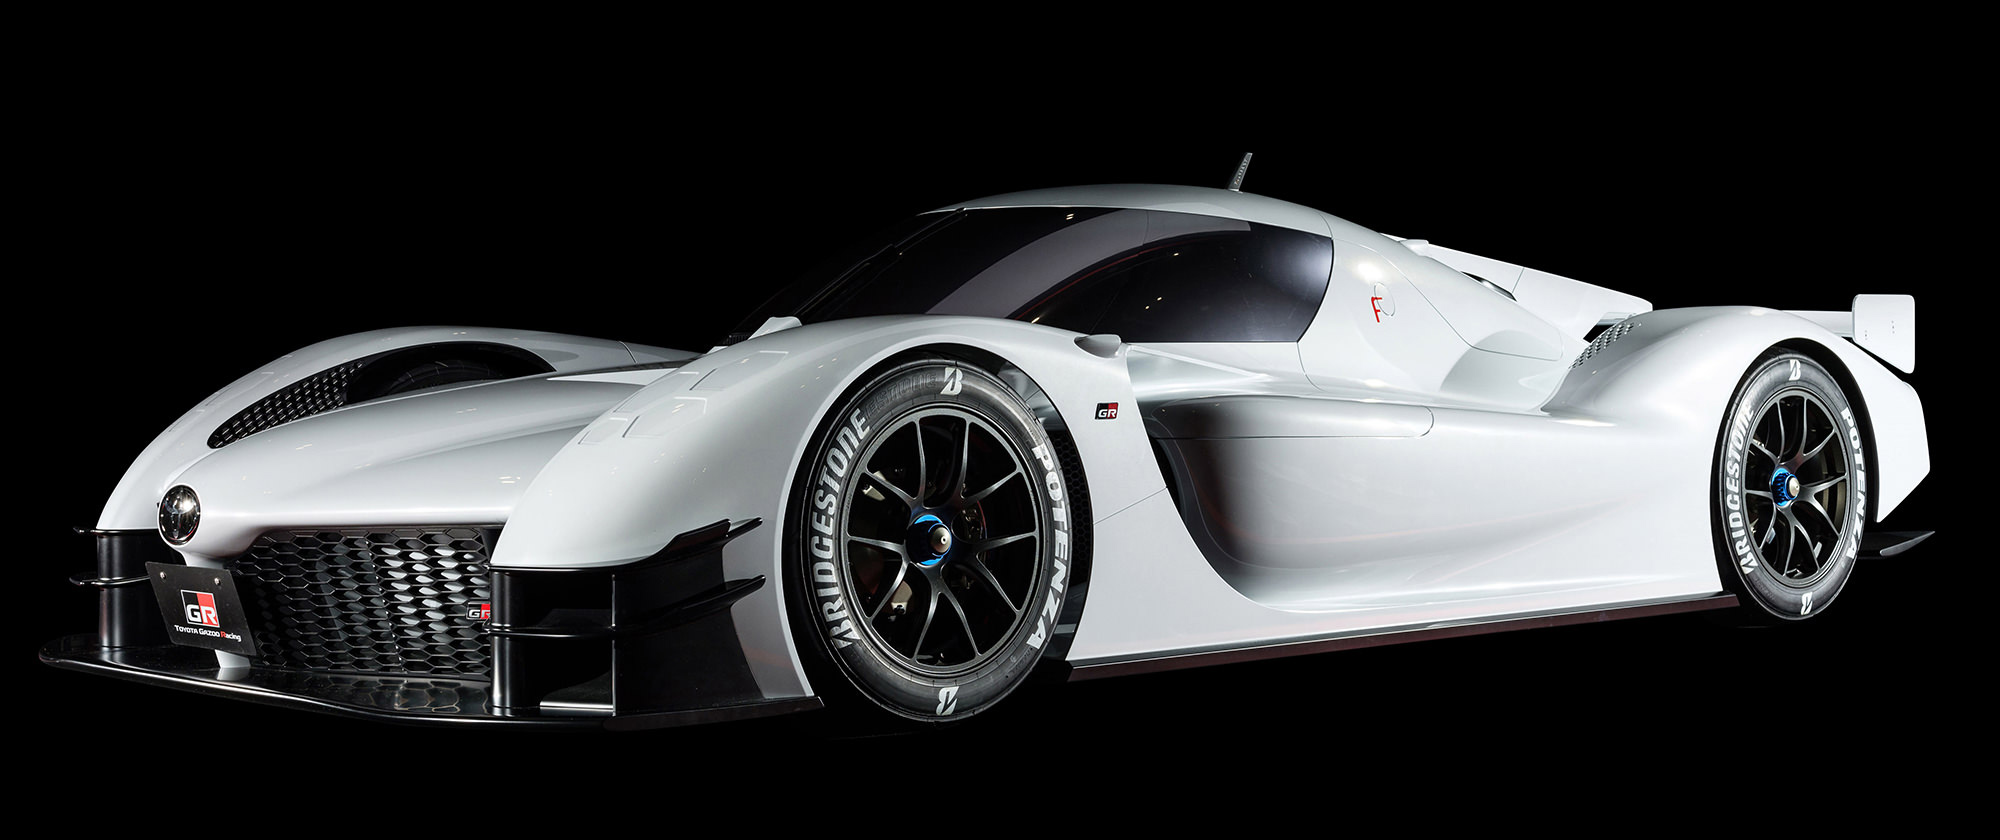 WEC technology for racing hearts.GR Super Sport. Developung now.